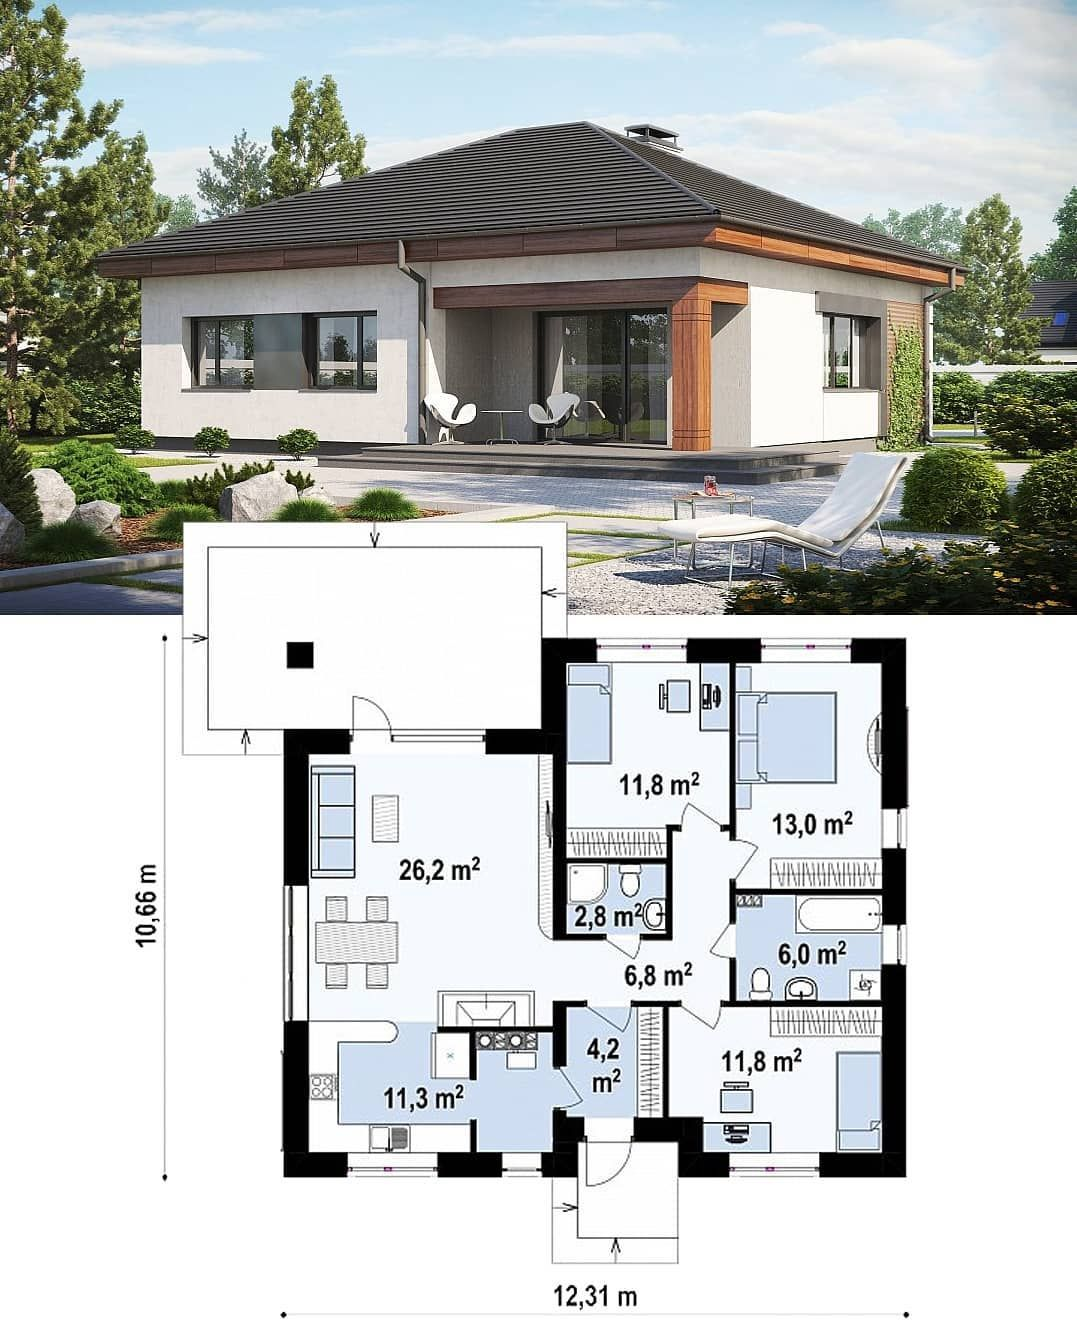 Want To Design 2d 3d Floor Plan Contact Us Pk Architect Low Budget Good Quality Free Beautiful House Plans Bungalow House Design House Construction Plan